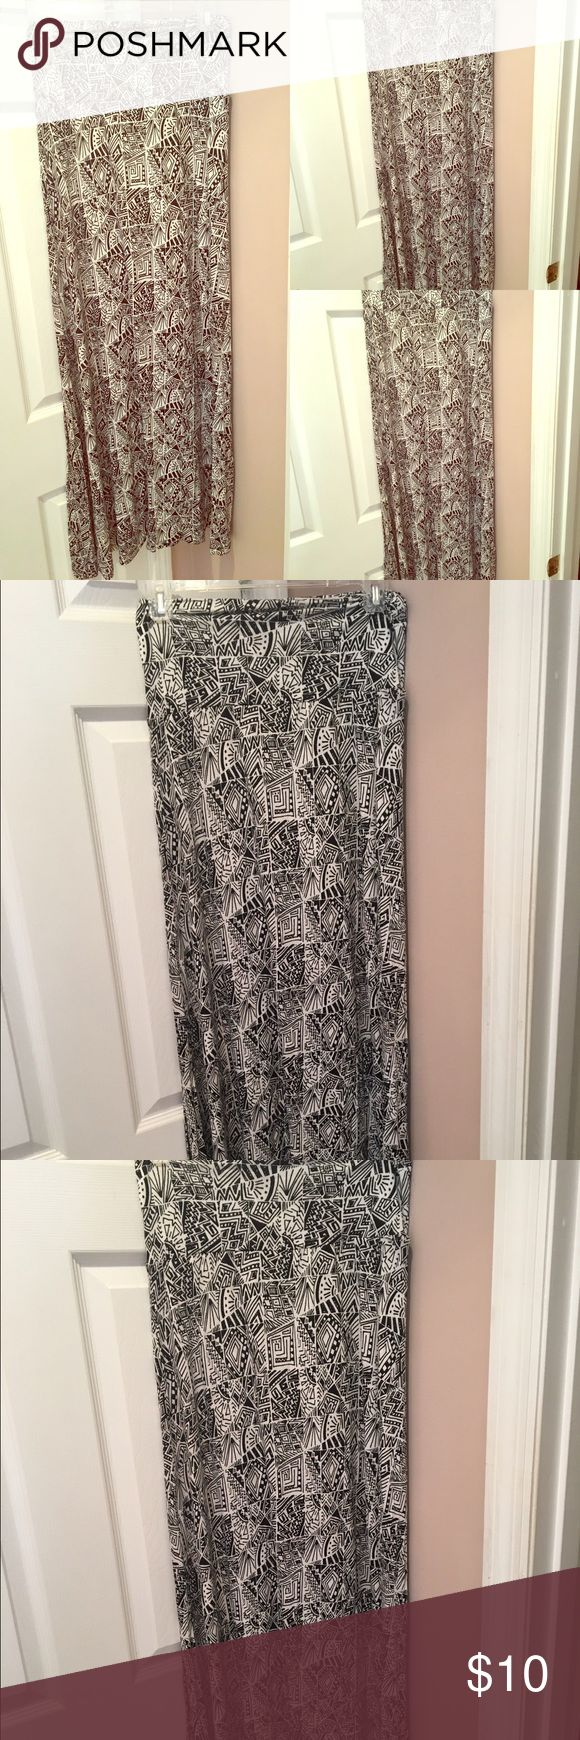 Black/White Aztec maxi skirt Size S $10 Maxi Skirts are great for Spring!!! Add a colorful top and you are ready for going out!! Never Been Worn! Size S $10 Skirts Maxi